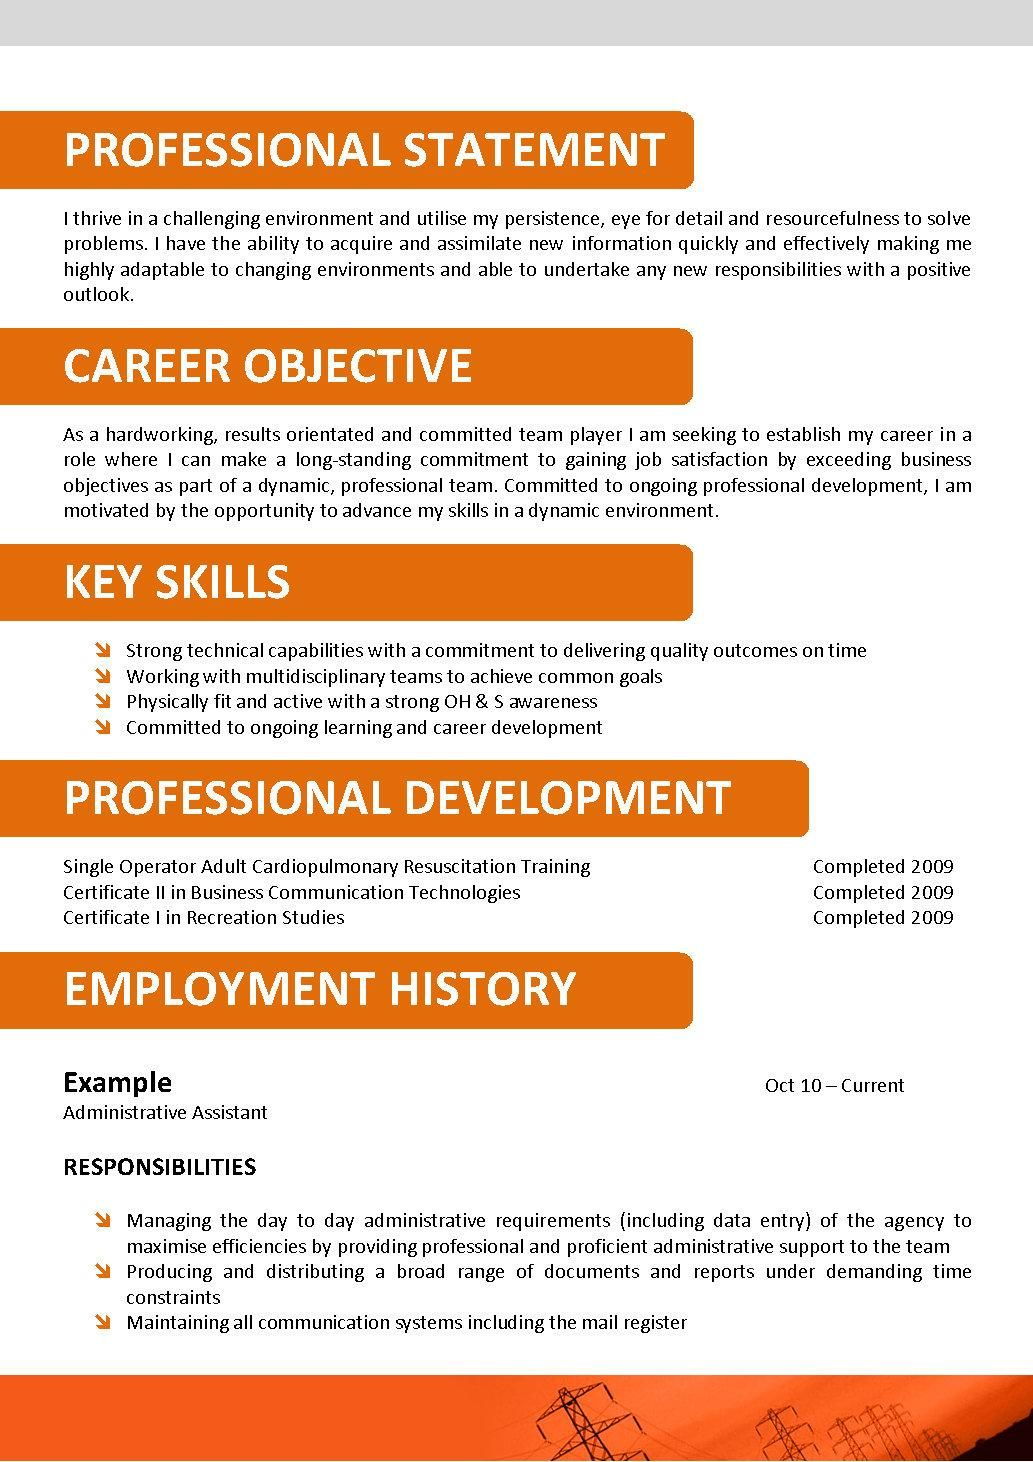 pin on resume templates career objective quotes for beginner template dominos delivery Resume Career Objective Quotes For Resume